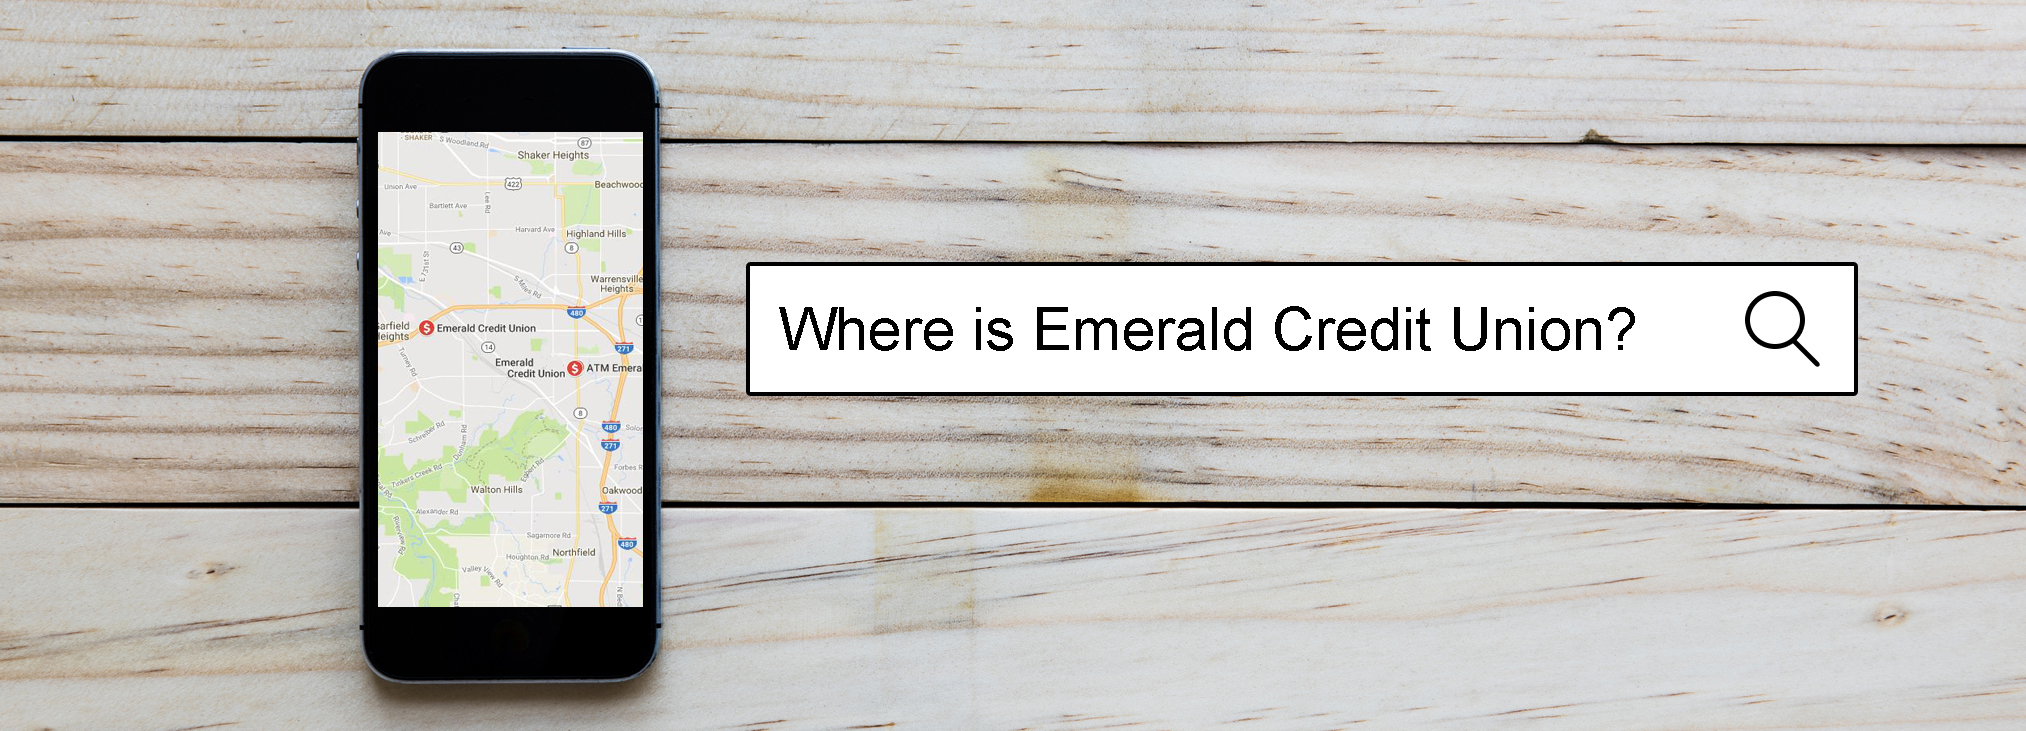 Where is Emerald Credit Union?